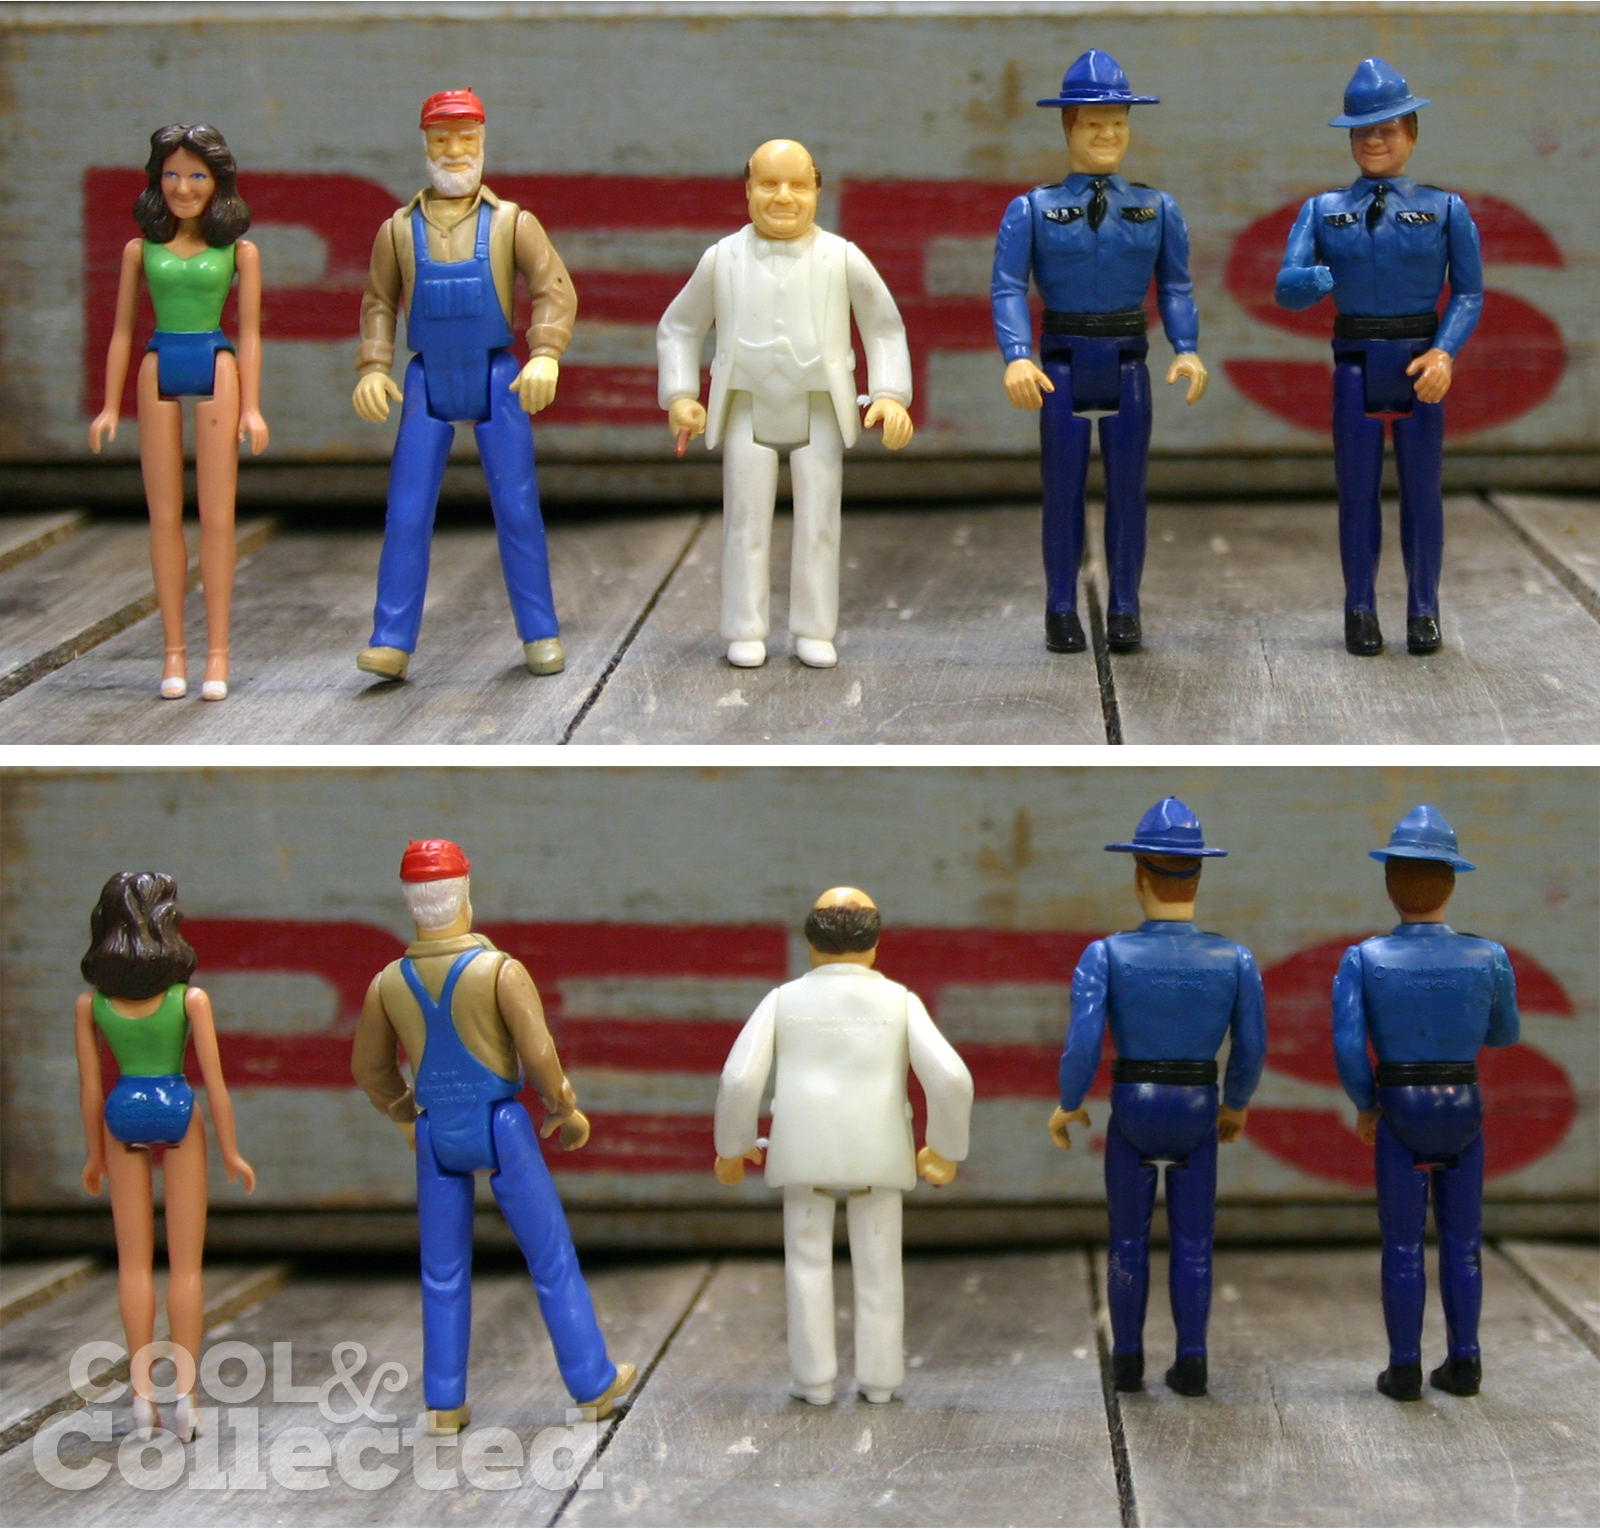 Dukes of Hazzard Mego action figures for sale